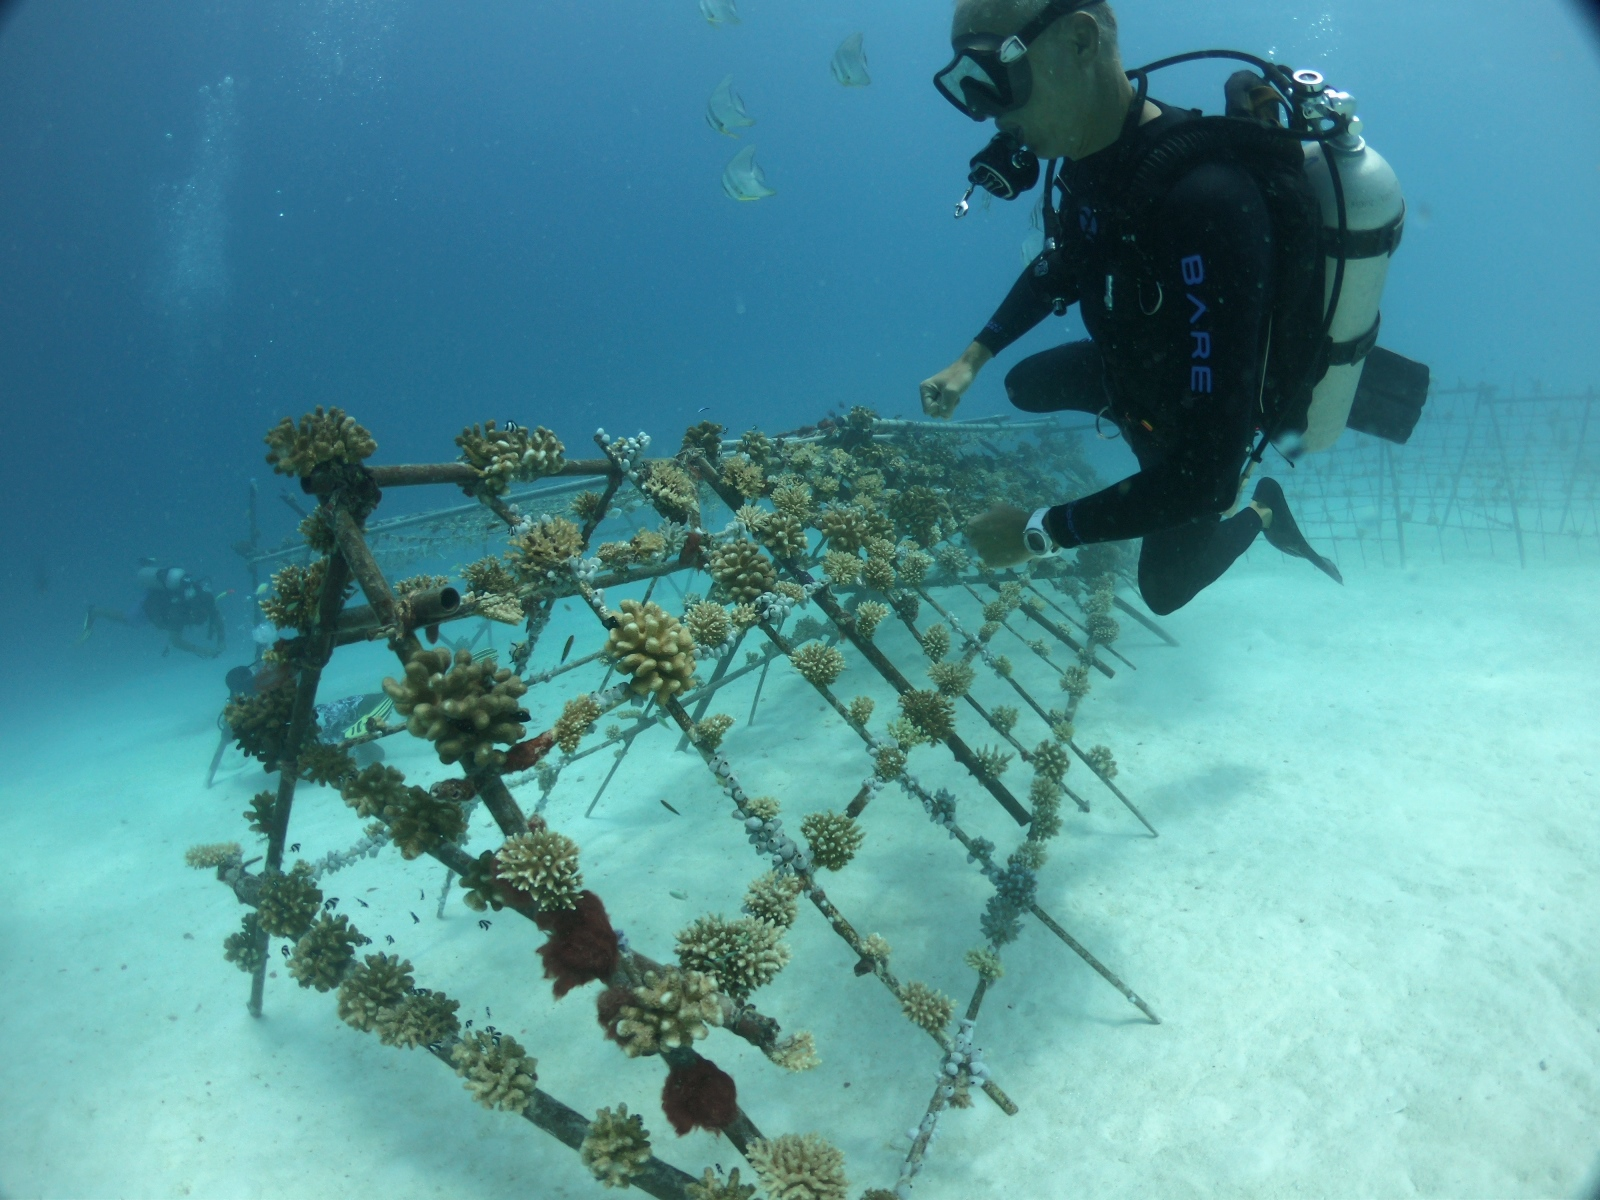 Arjan Sierink inspects the coral reef farm he initiated at Summer Island Maldives, on a budget of not more than $1,000.